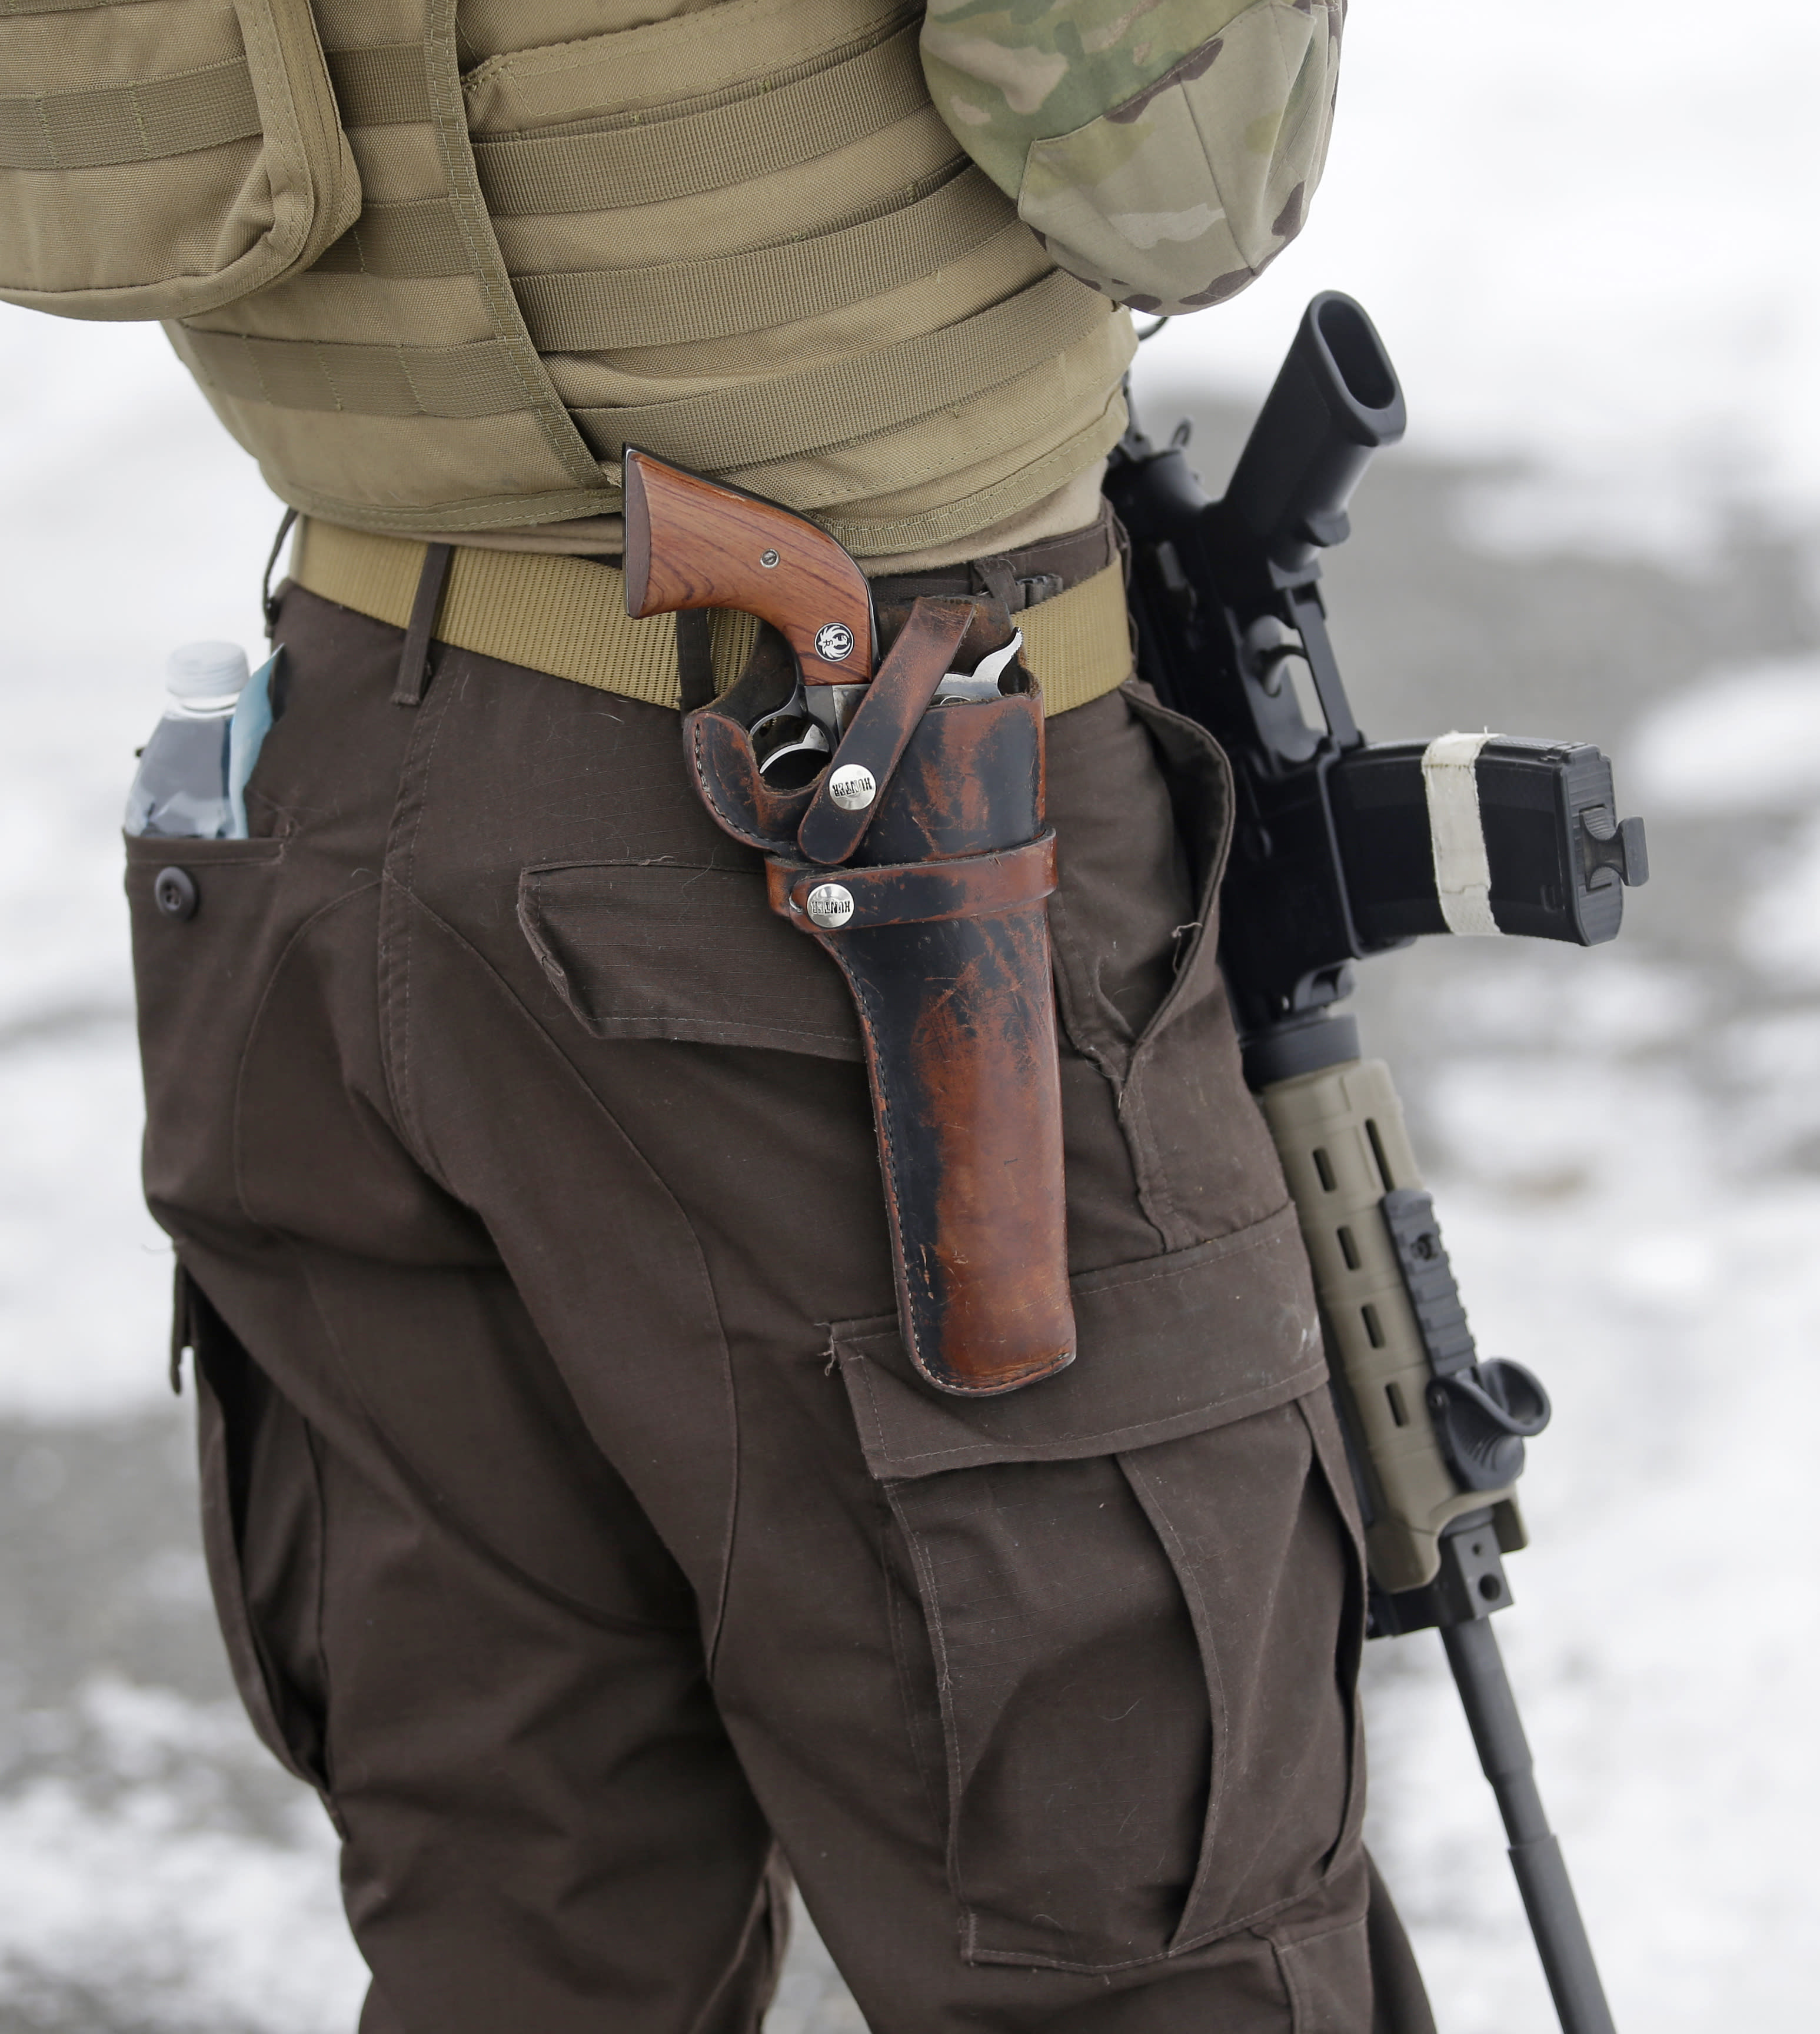 FILE - In this Jan. 9, 2016, file photo, a man stands guard after several organizations arrived at the Malheur National Wildlife Refuge near Burns, Ore. A new report from the Government Accountability Office highlights violence against public lands employees amid heightened tensions with anti-government groups. (AP Photo/Rick Bowmer, File)